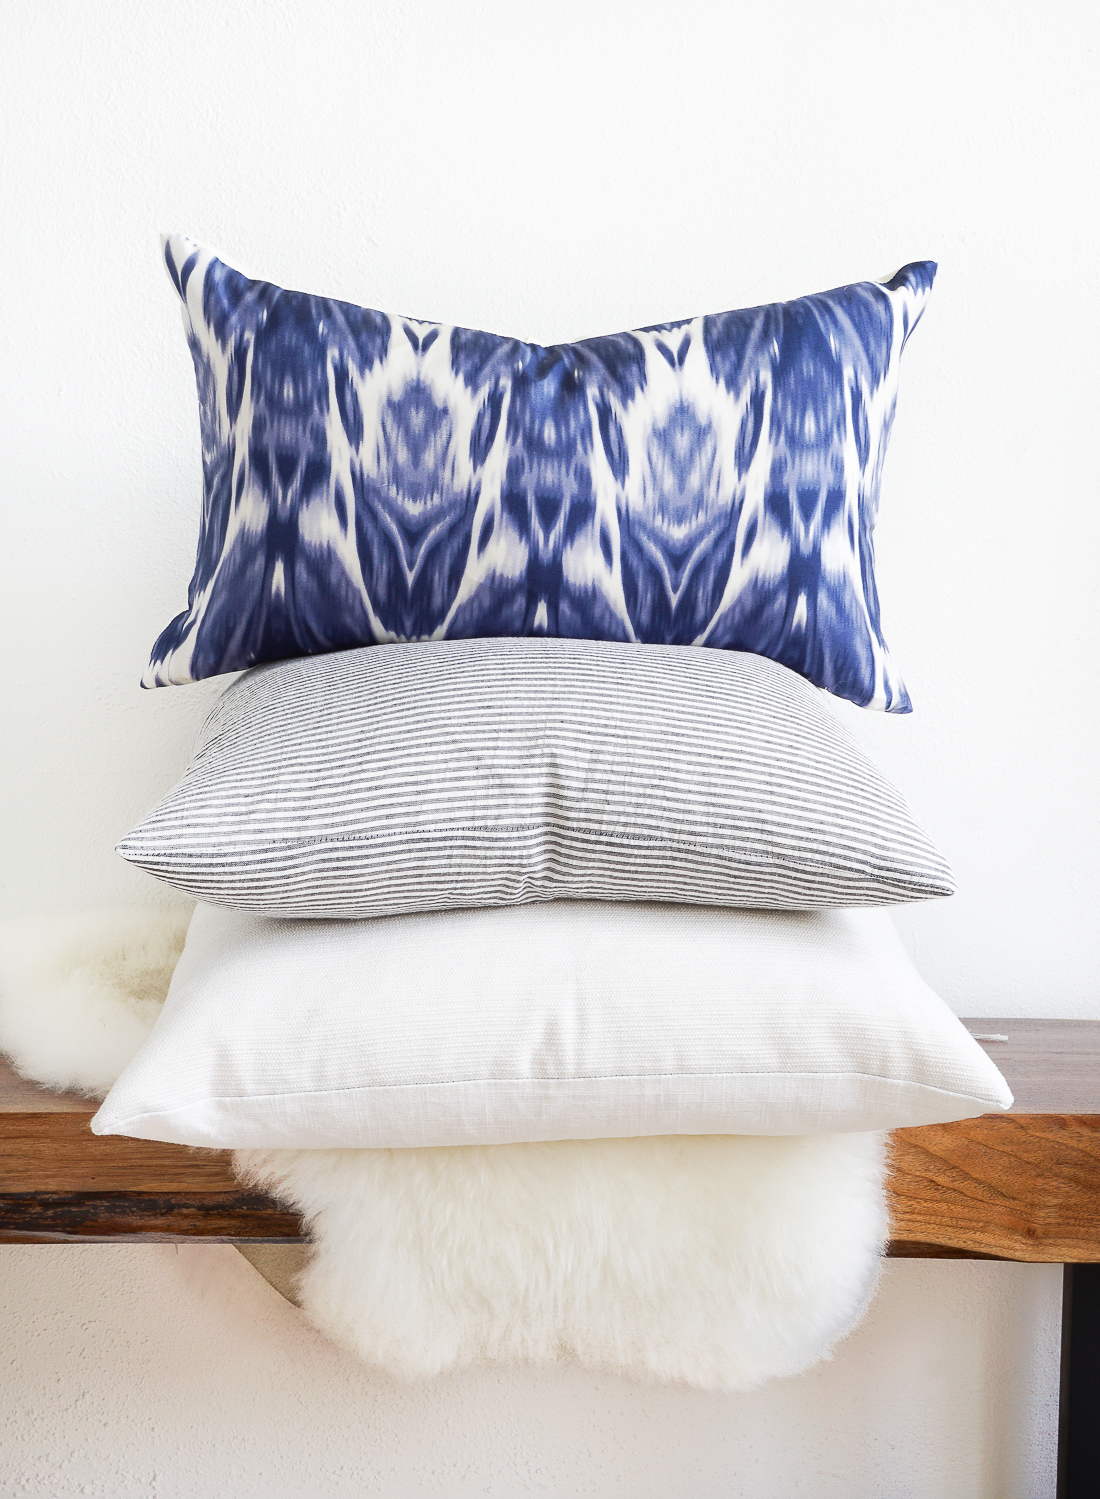 Dress To Throw Pillow Repurposing Fashion Into Home Decor